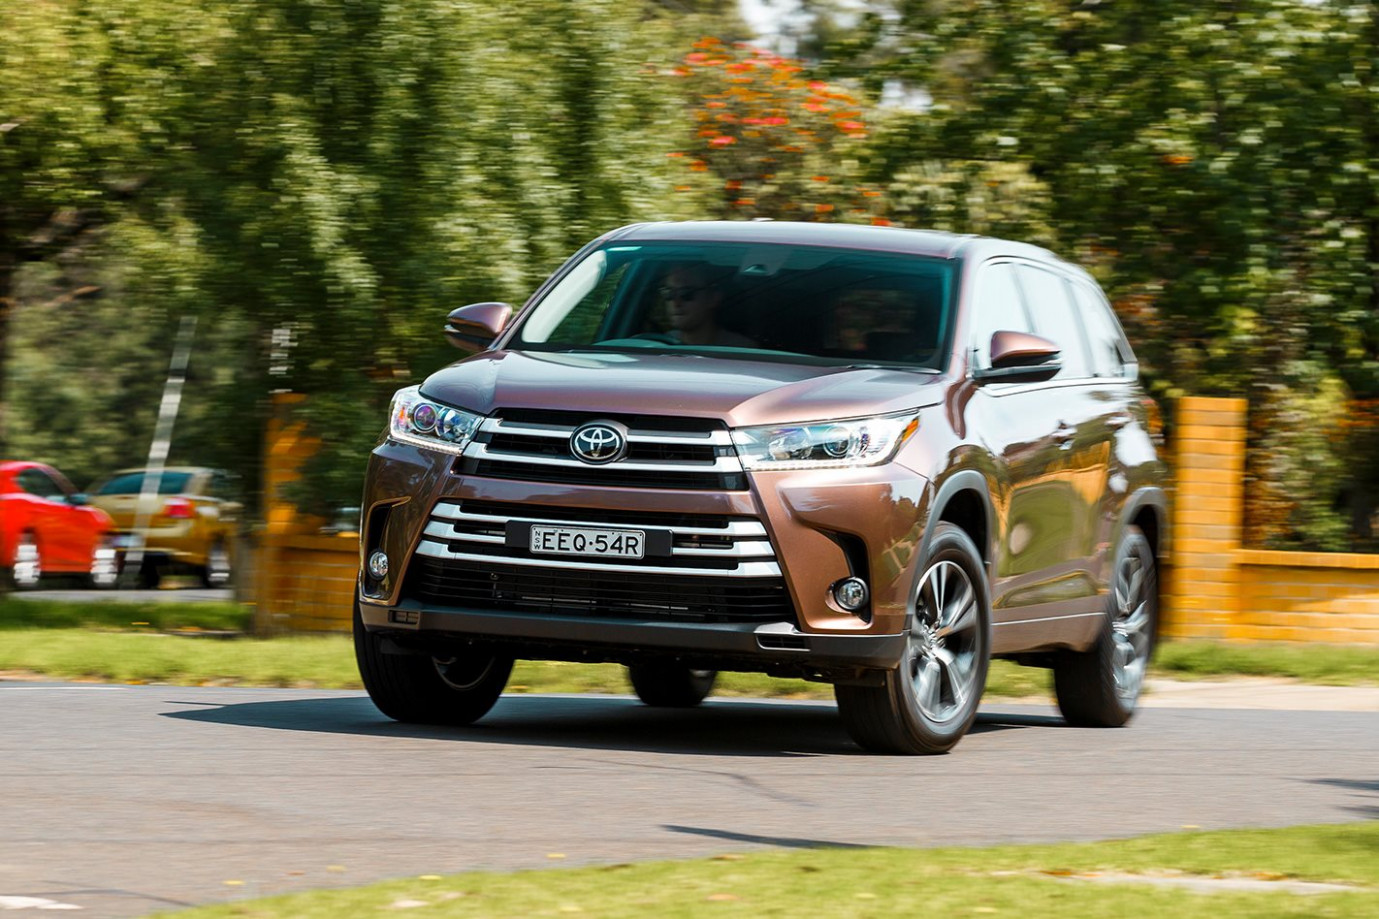 Toyota Kluger GX 12 review